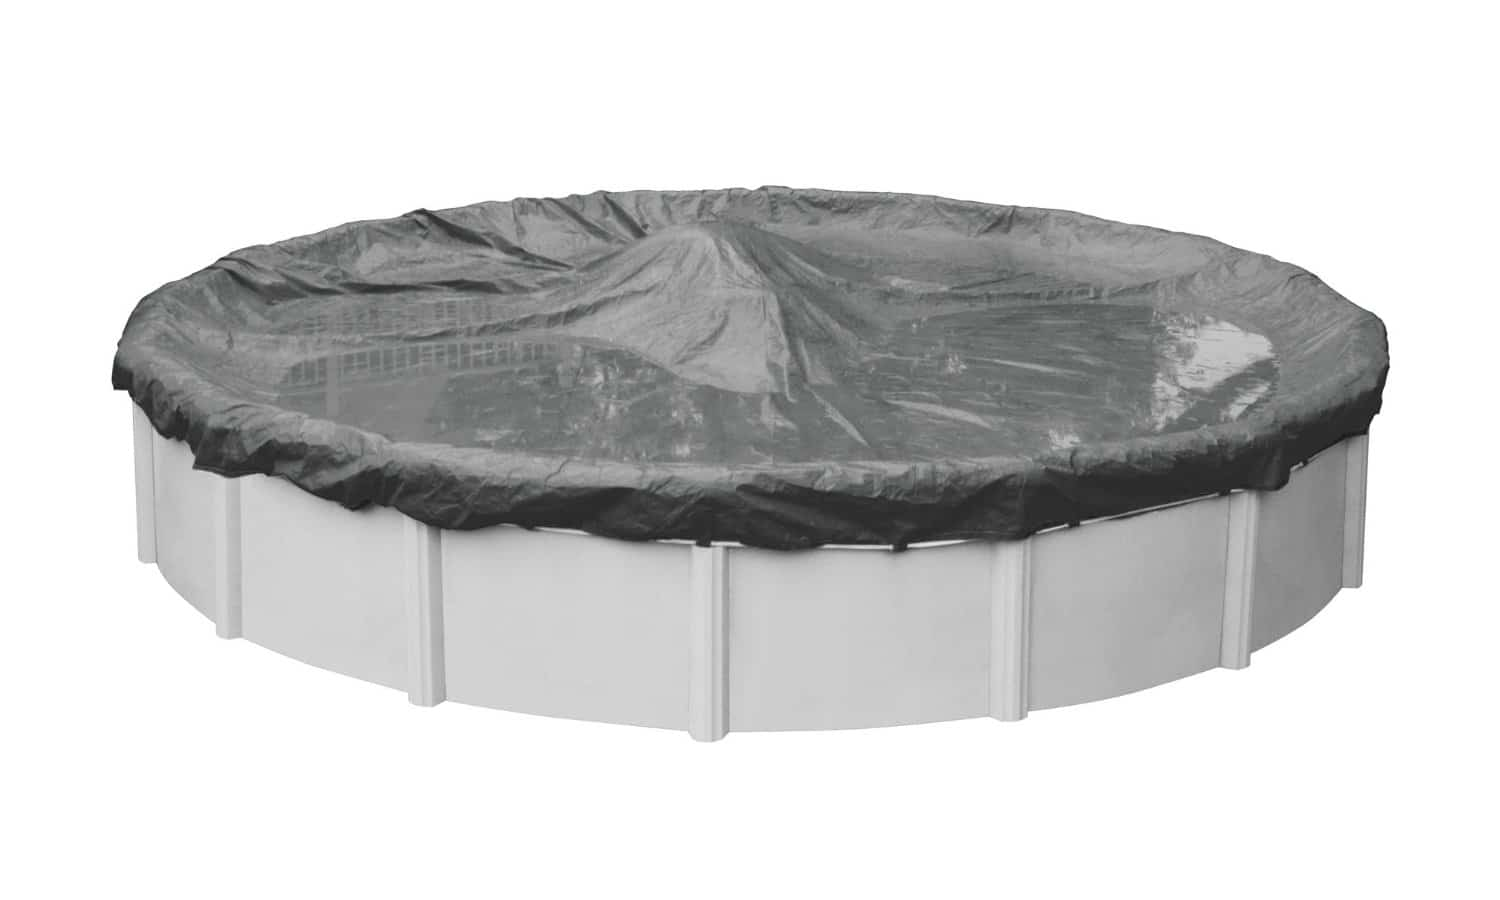 Best Pool Covers For Above Ground Pools 2020